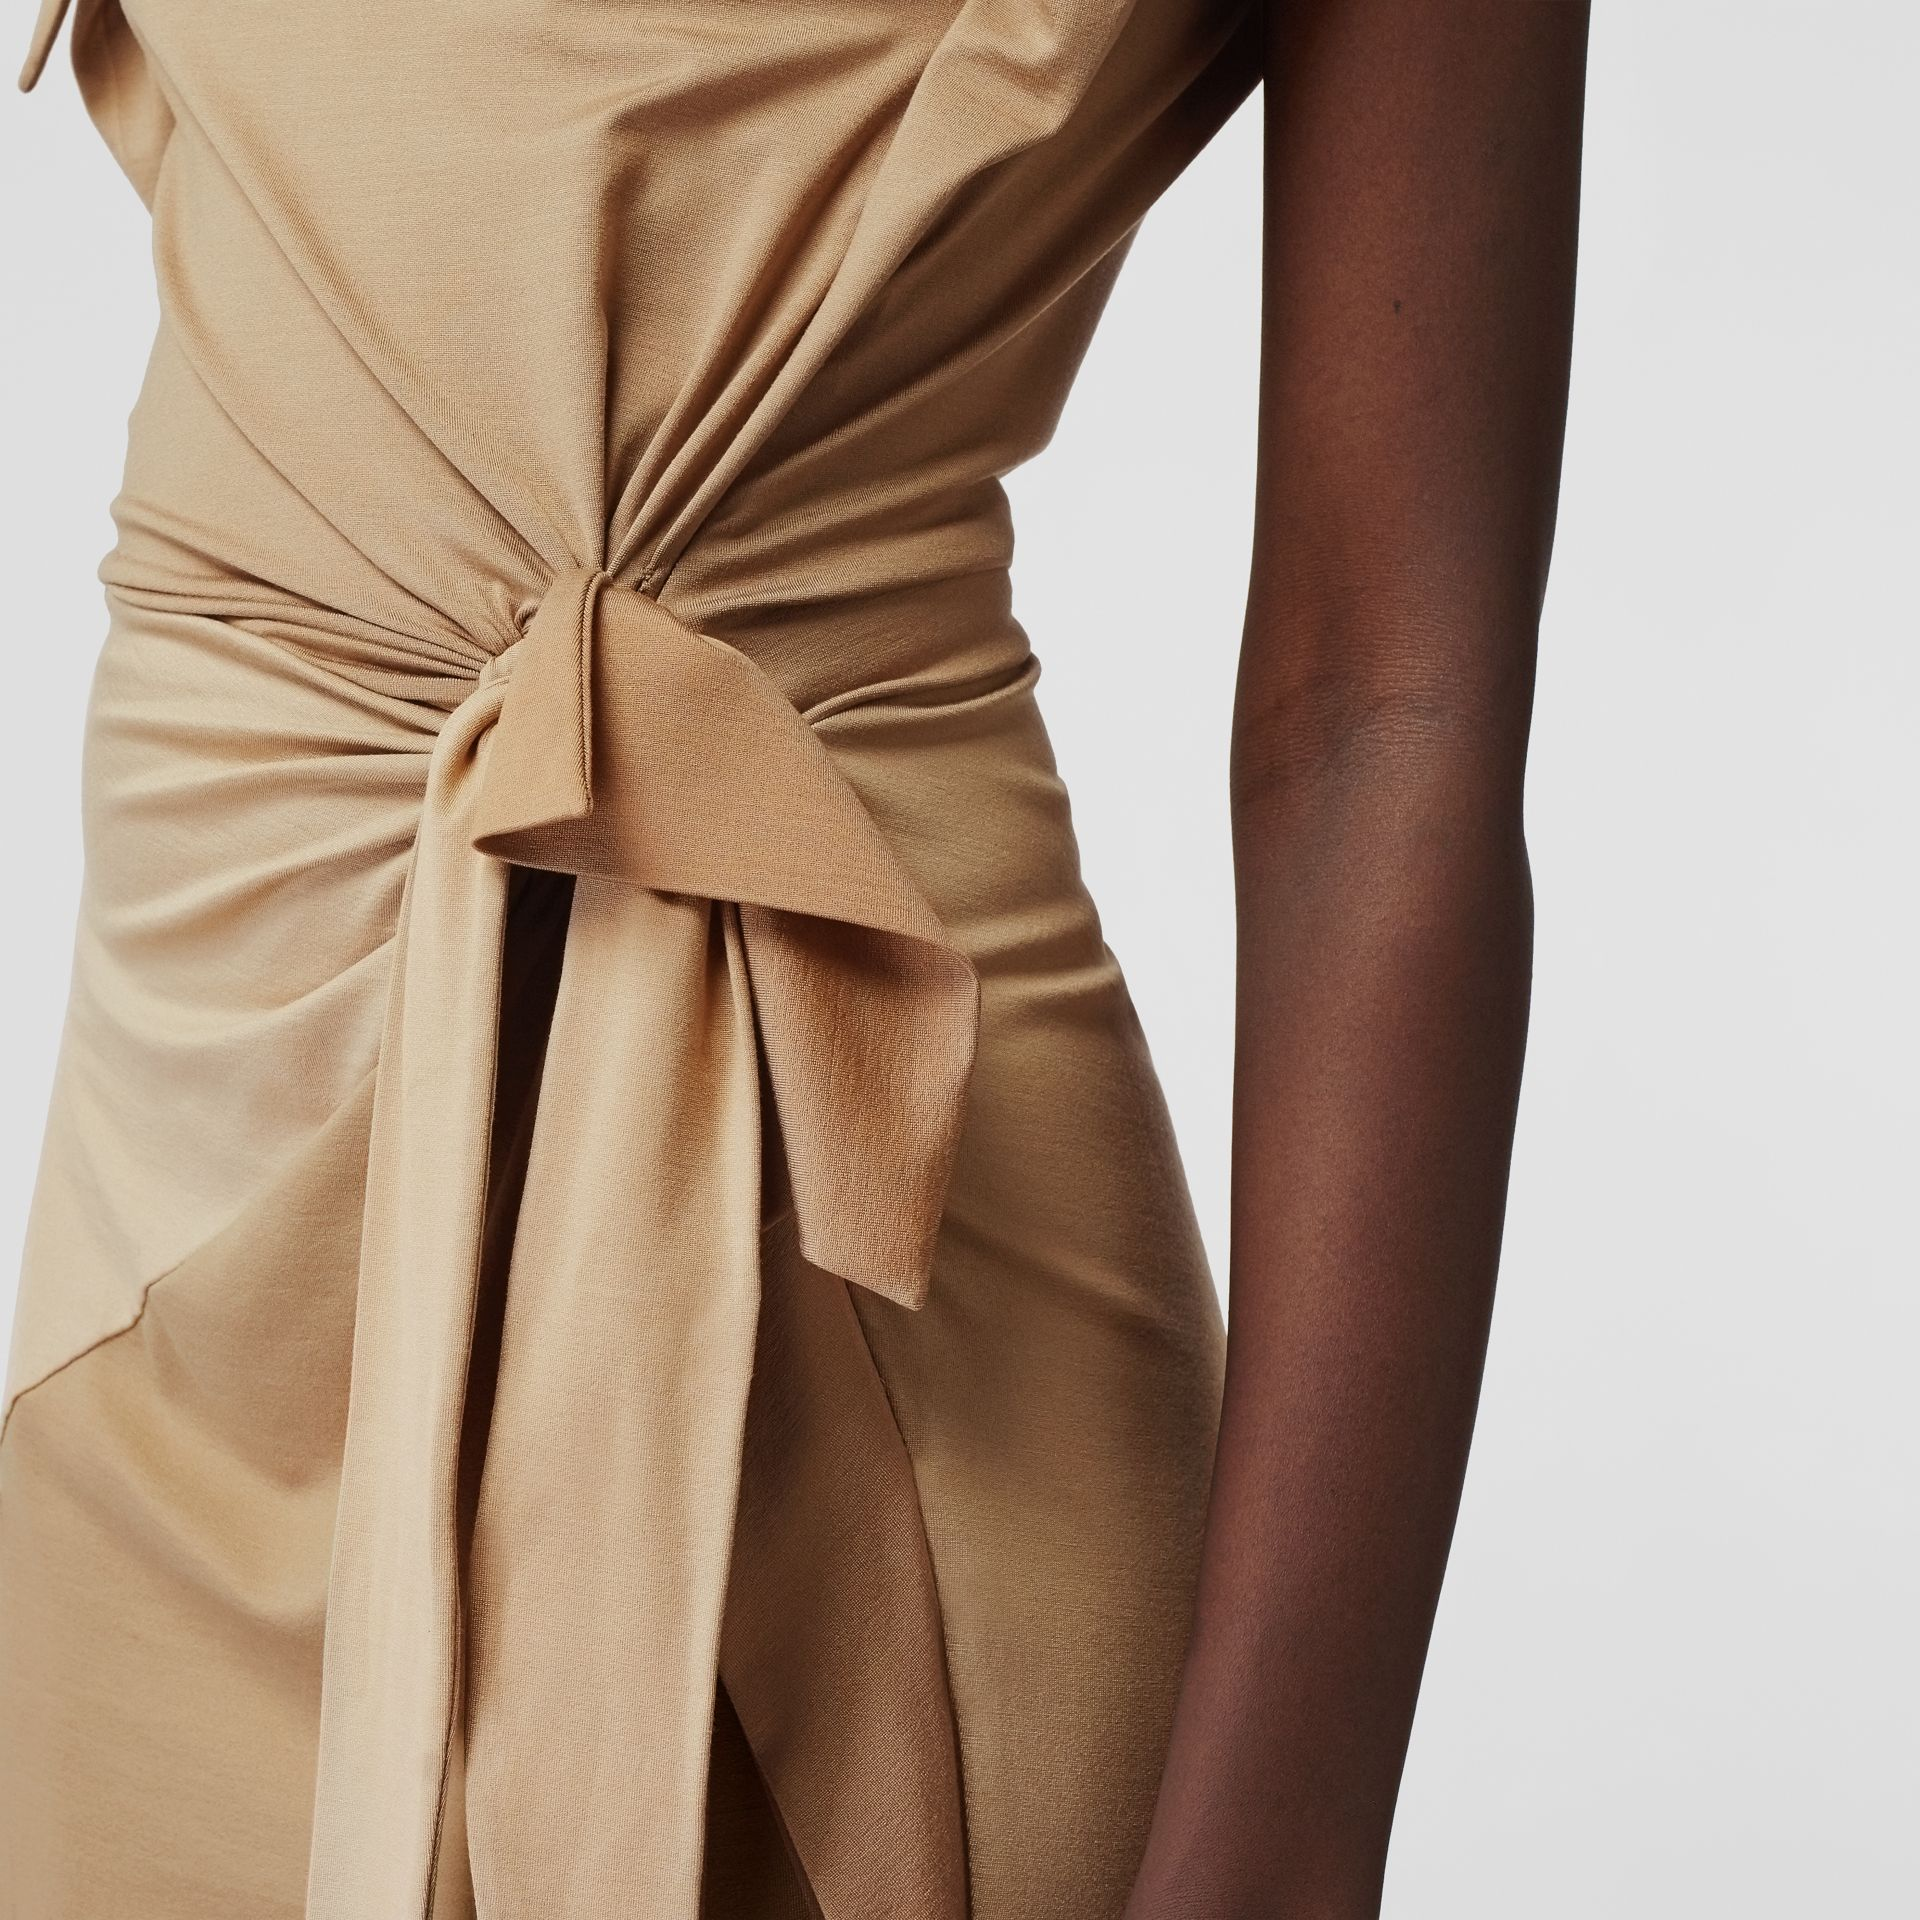 Tie Detail Tri-tone Silk Jersey Dress in Wheat - Women | Burberry - gallery image 6